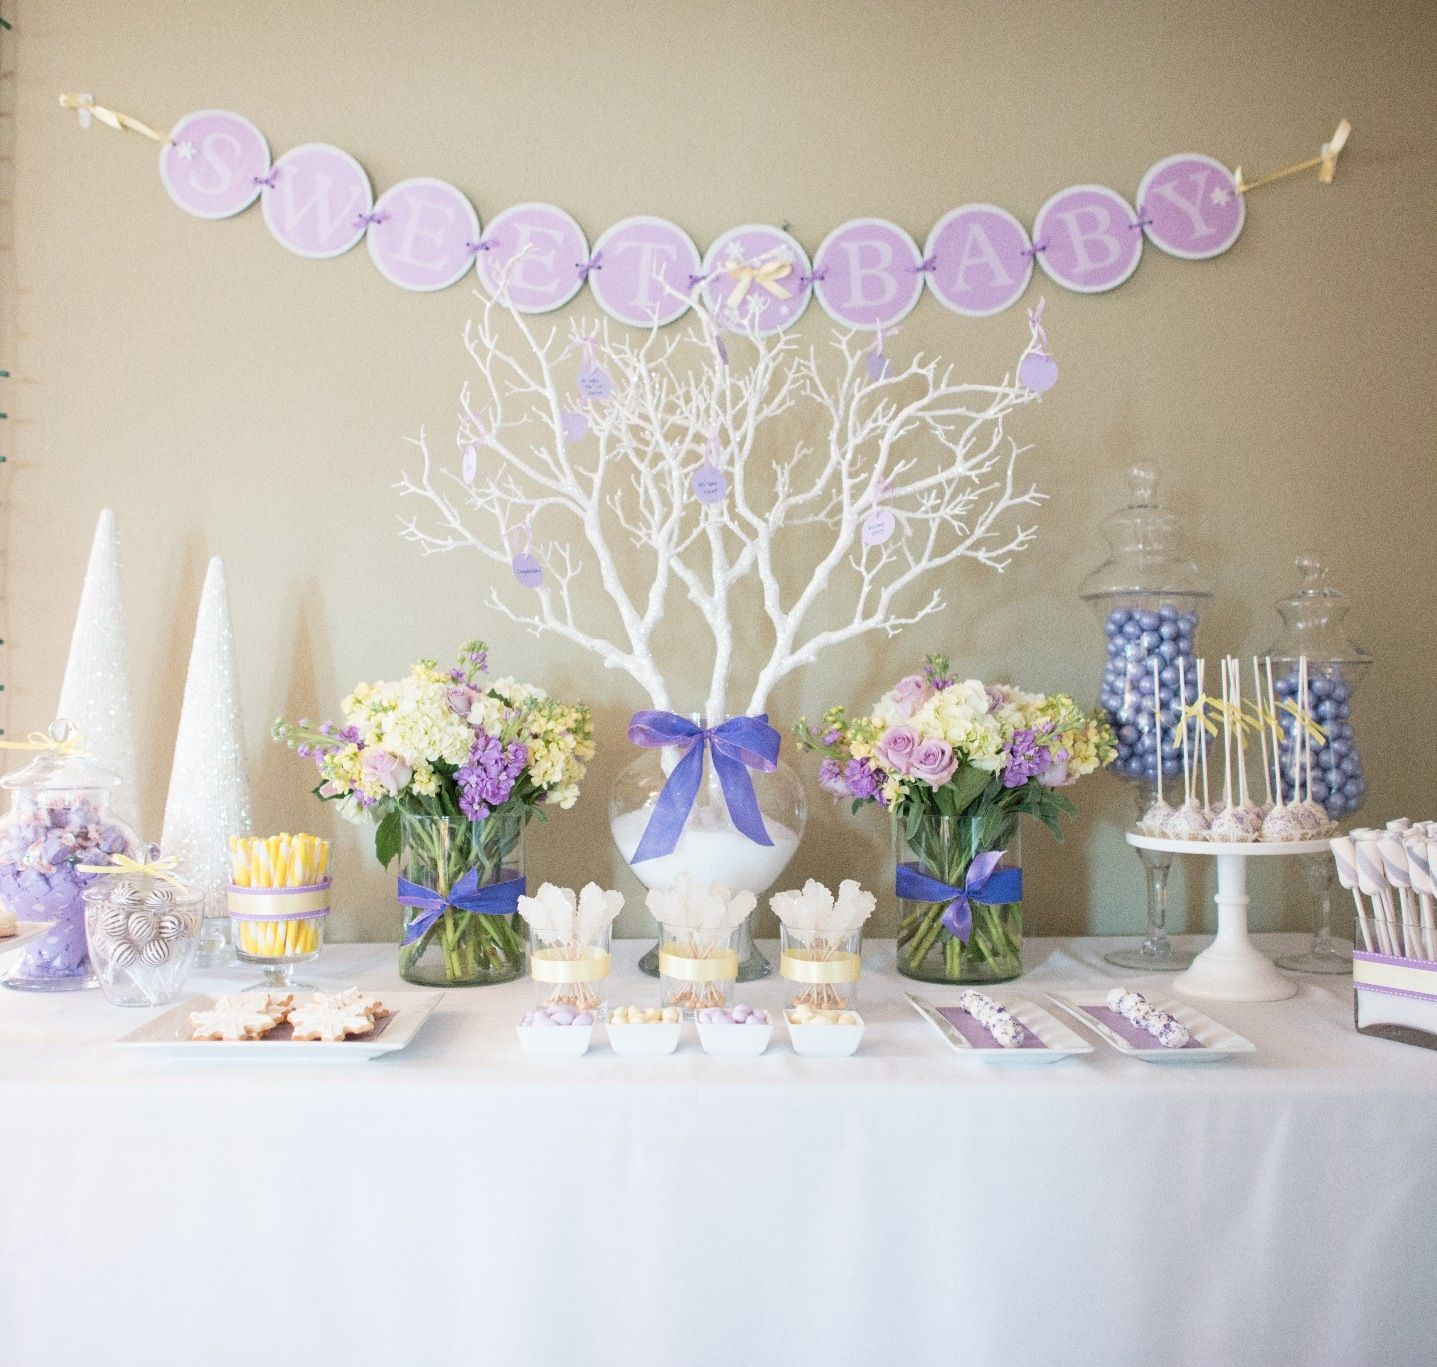 Winter wonderland themed baby shower | Sweets Table ...